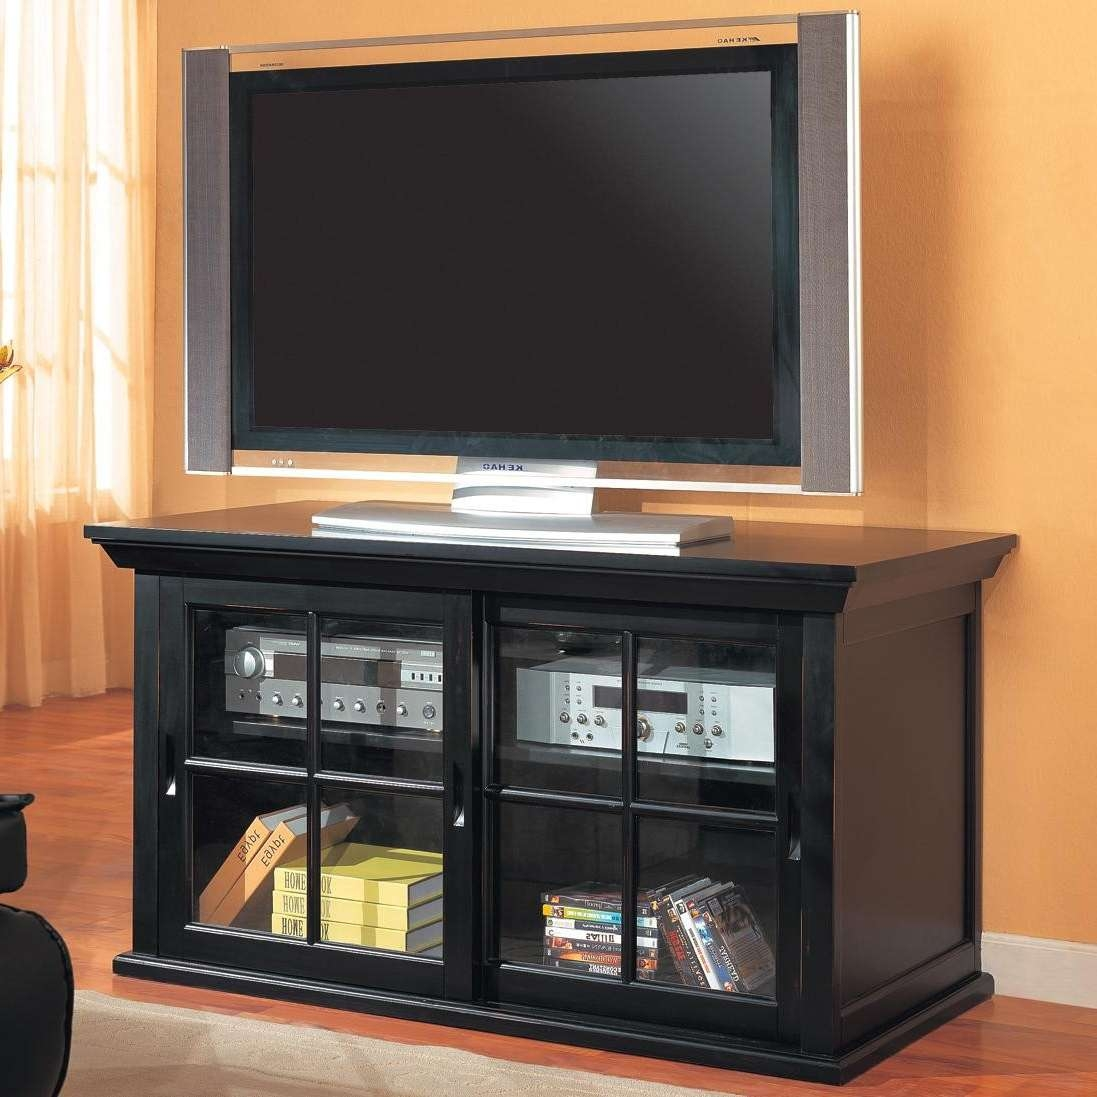 Tv Stands Transitional Media Console With Sliding Glass Doors Within Wooden Tv Stands With Doors (View 15 of 15)